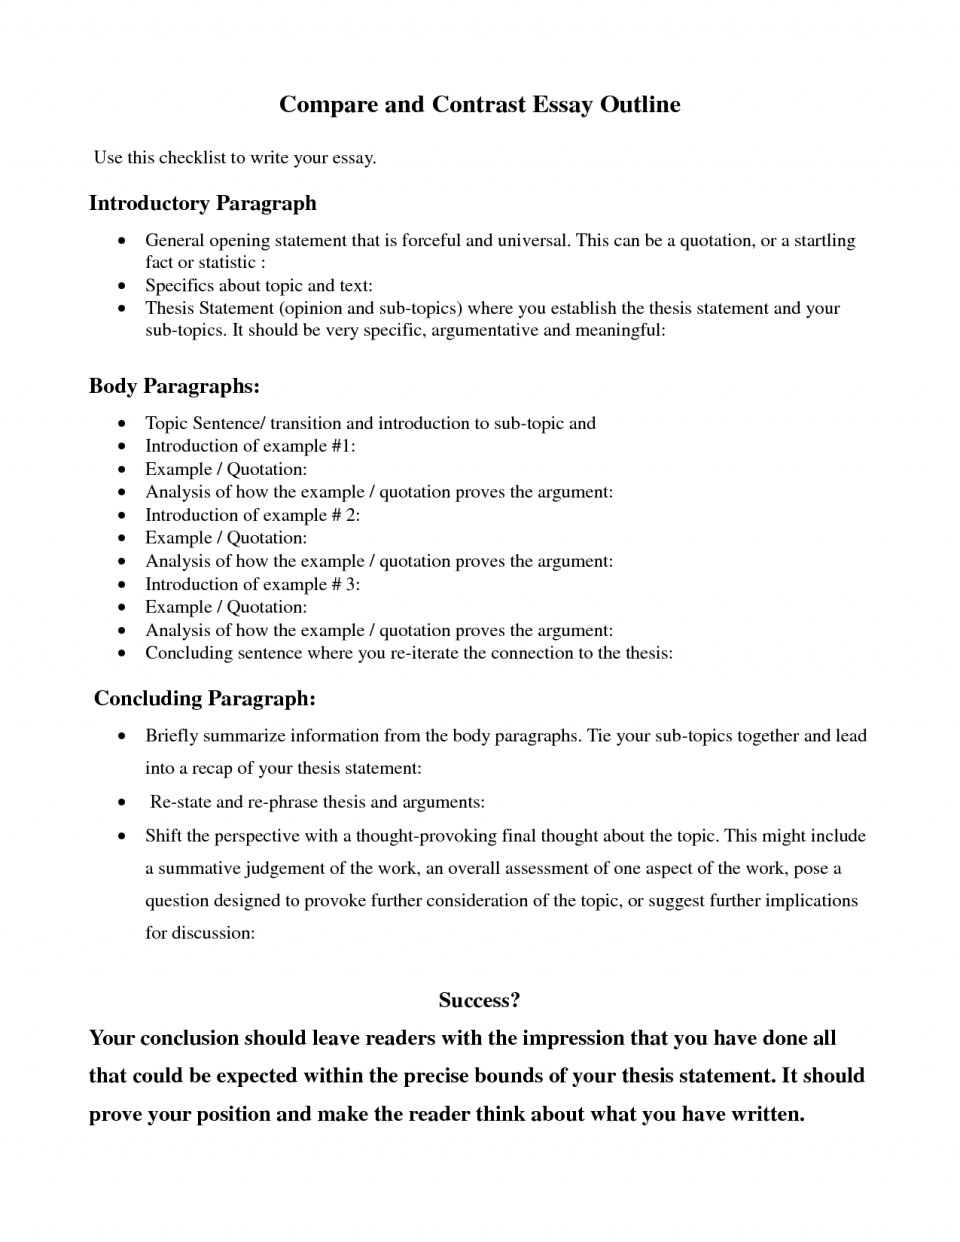 010 Essay Example Comparison Contrast Magnificent Topics Compare Ielts For Esl Students And Middle School 960